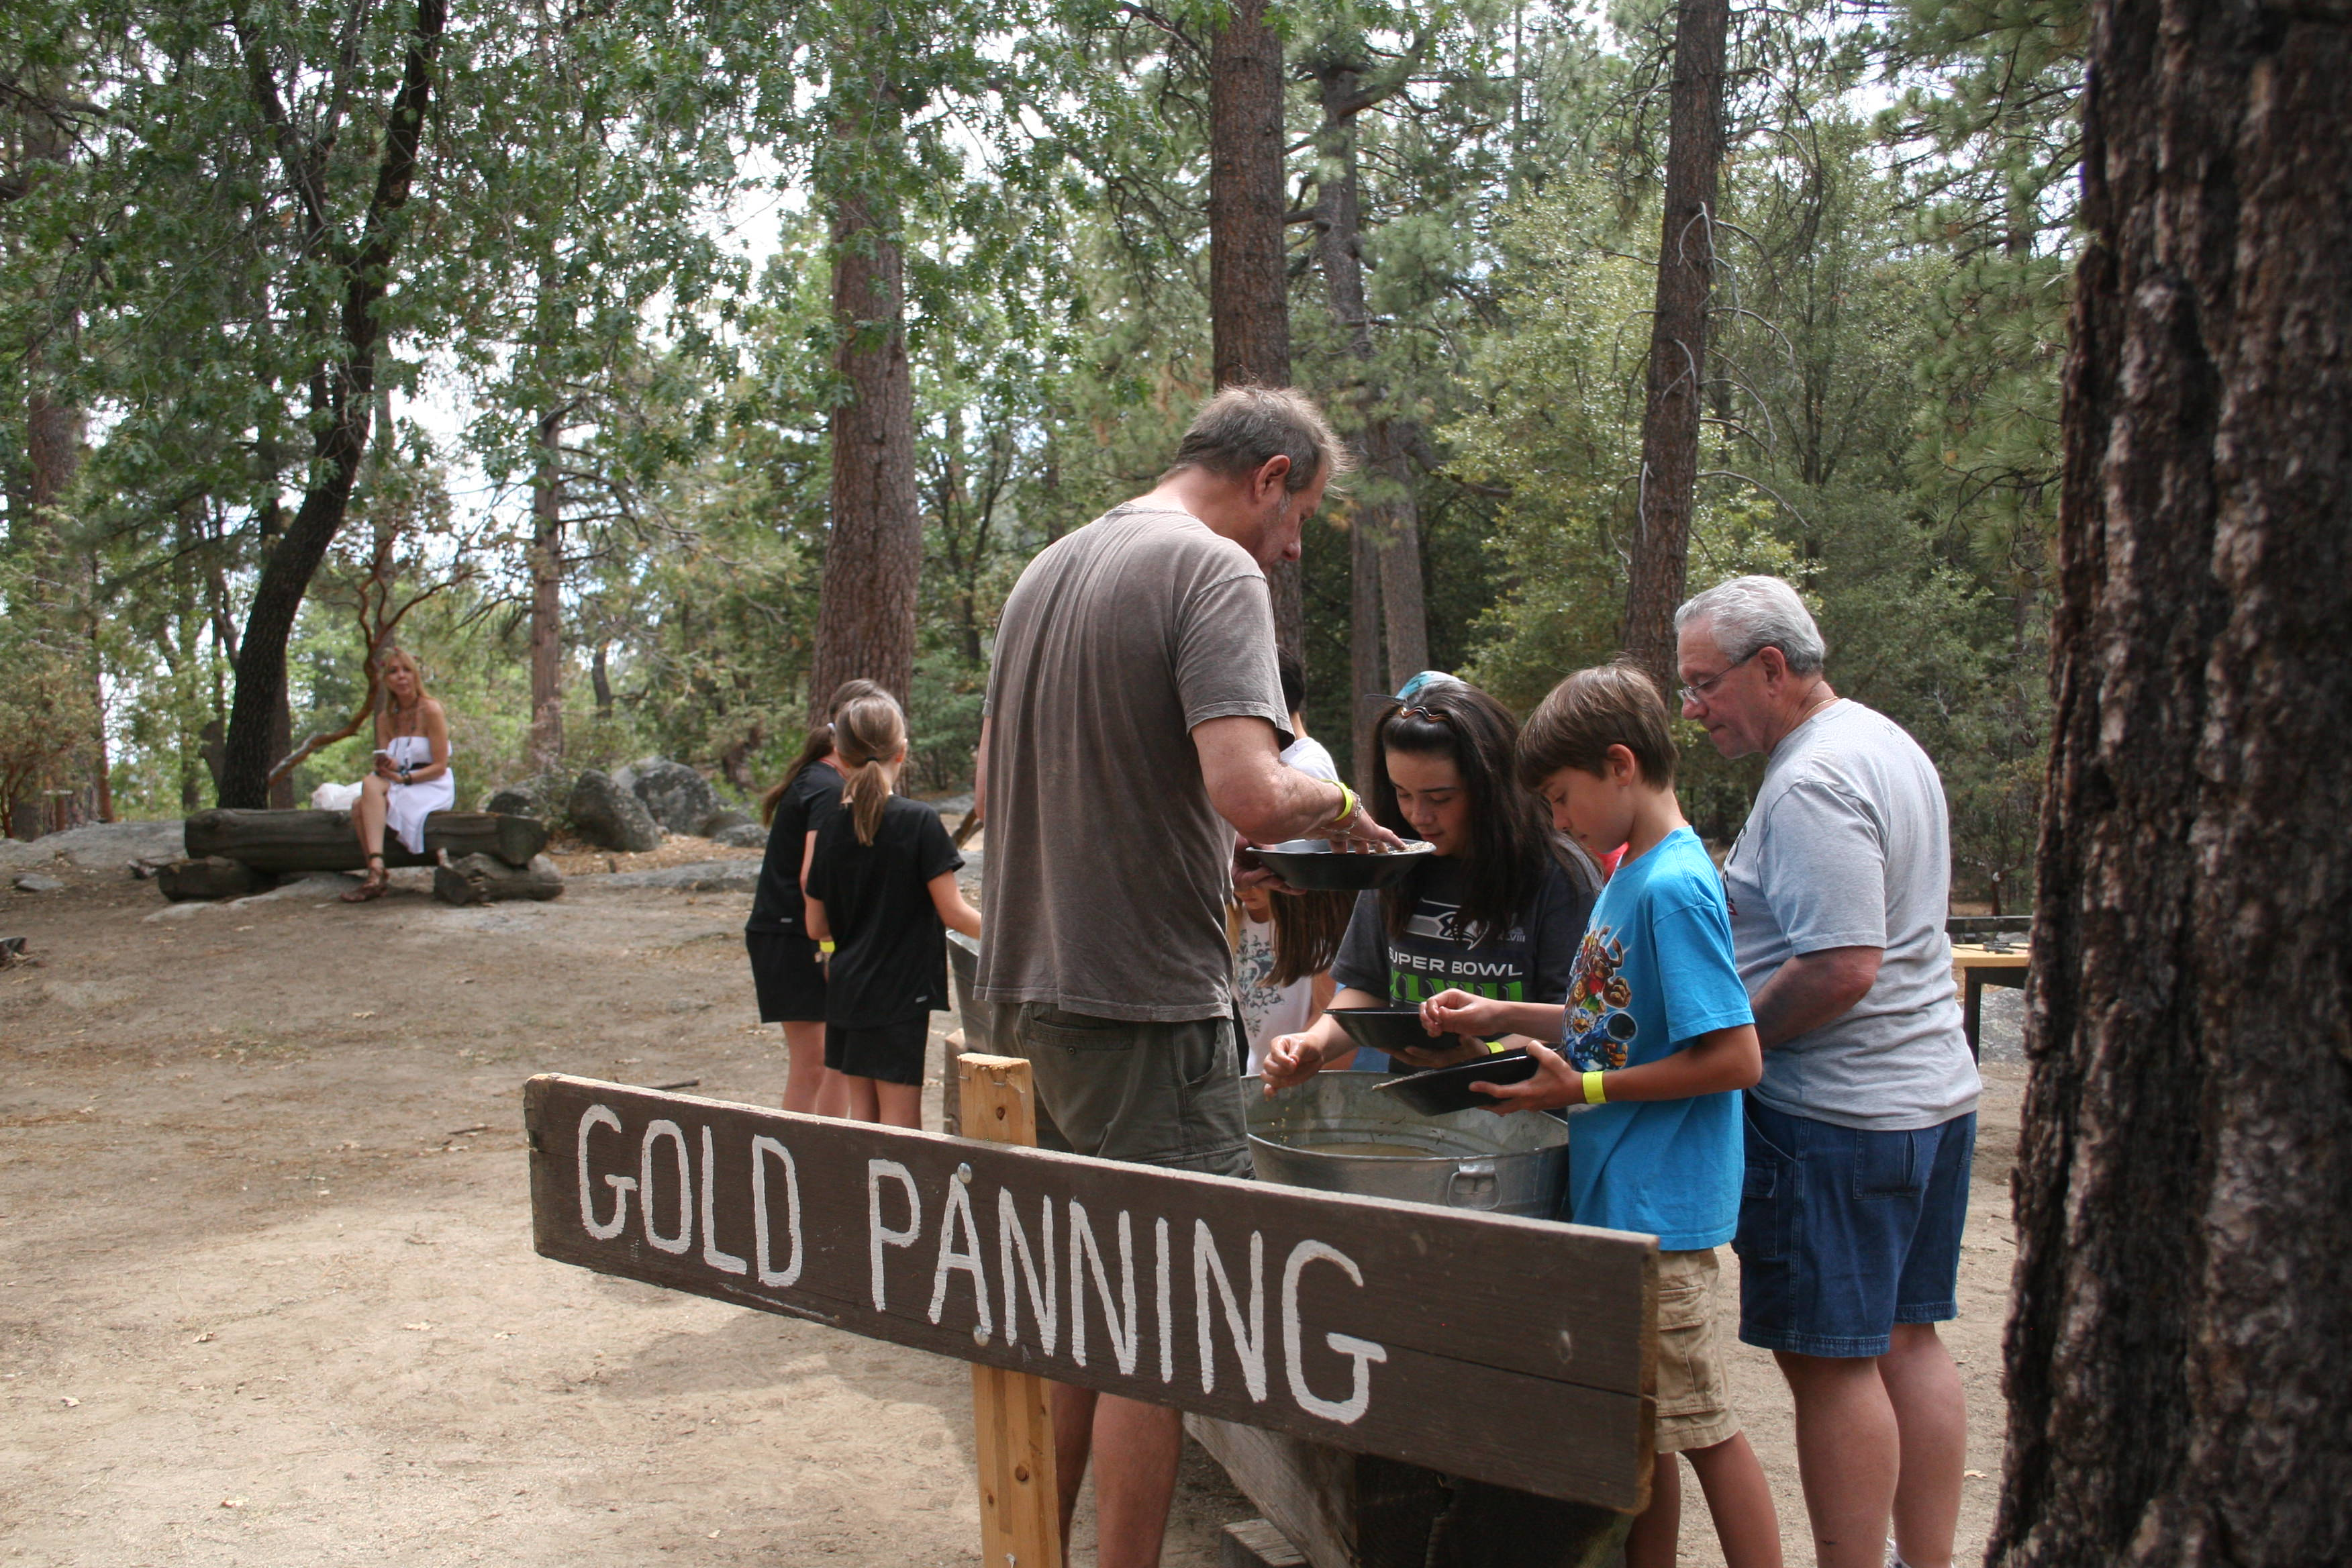 Panning for gold among the pines